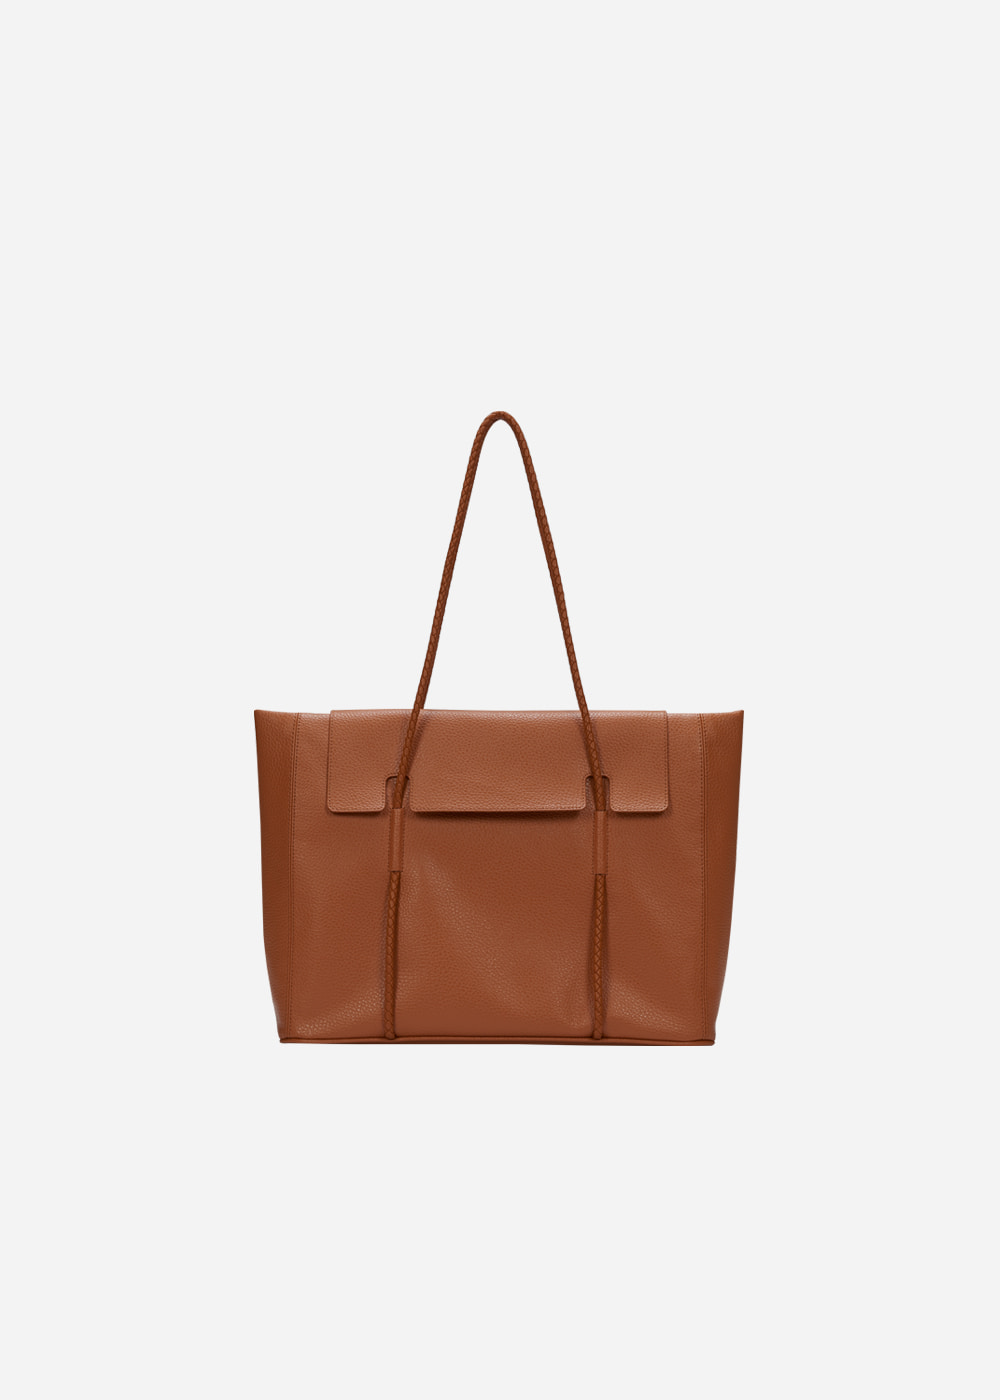 Norah Bag Camel Medium